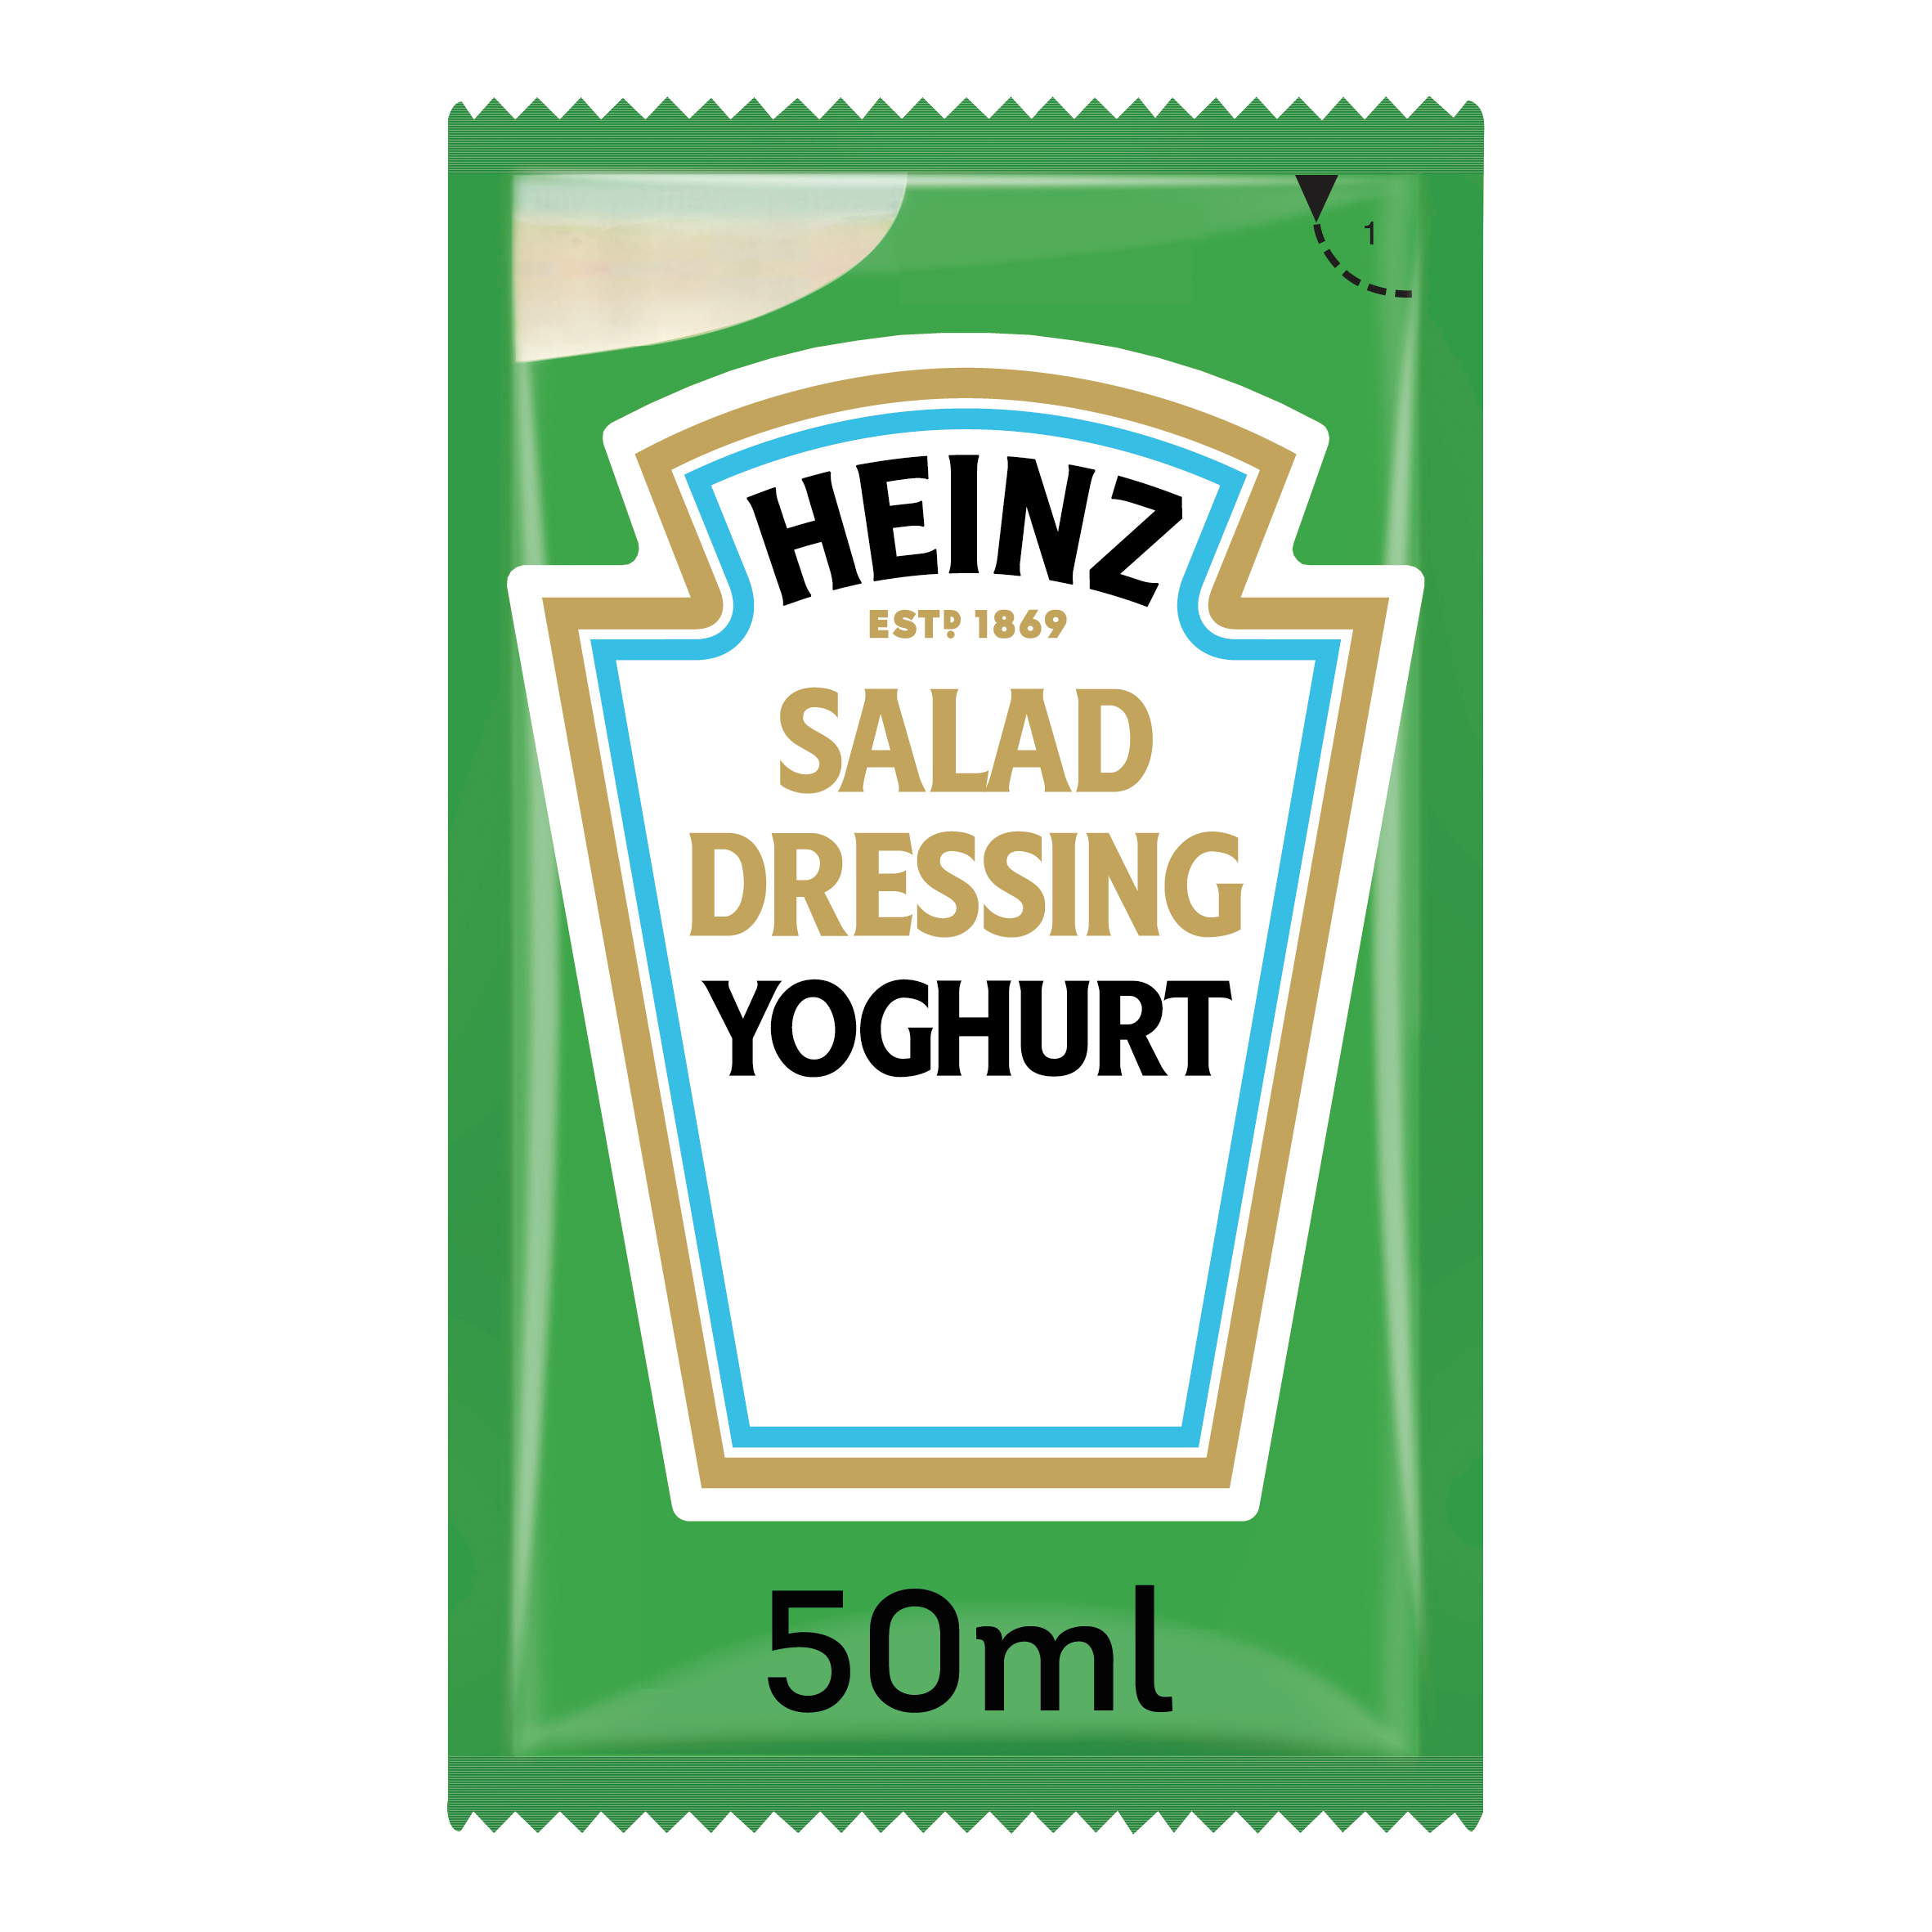 Heinz yoghurt dressing 50ml